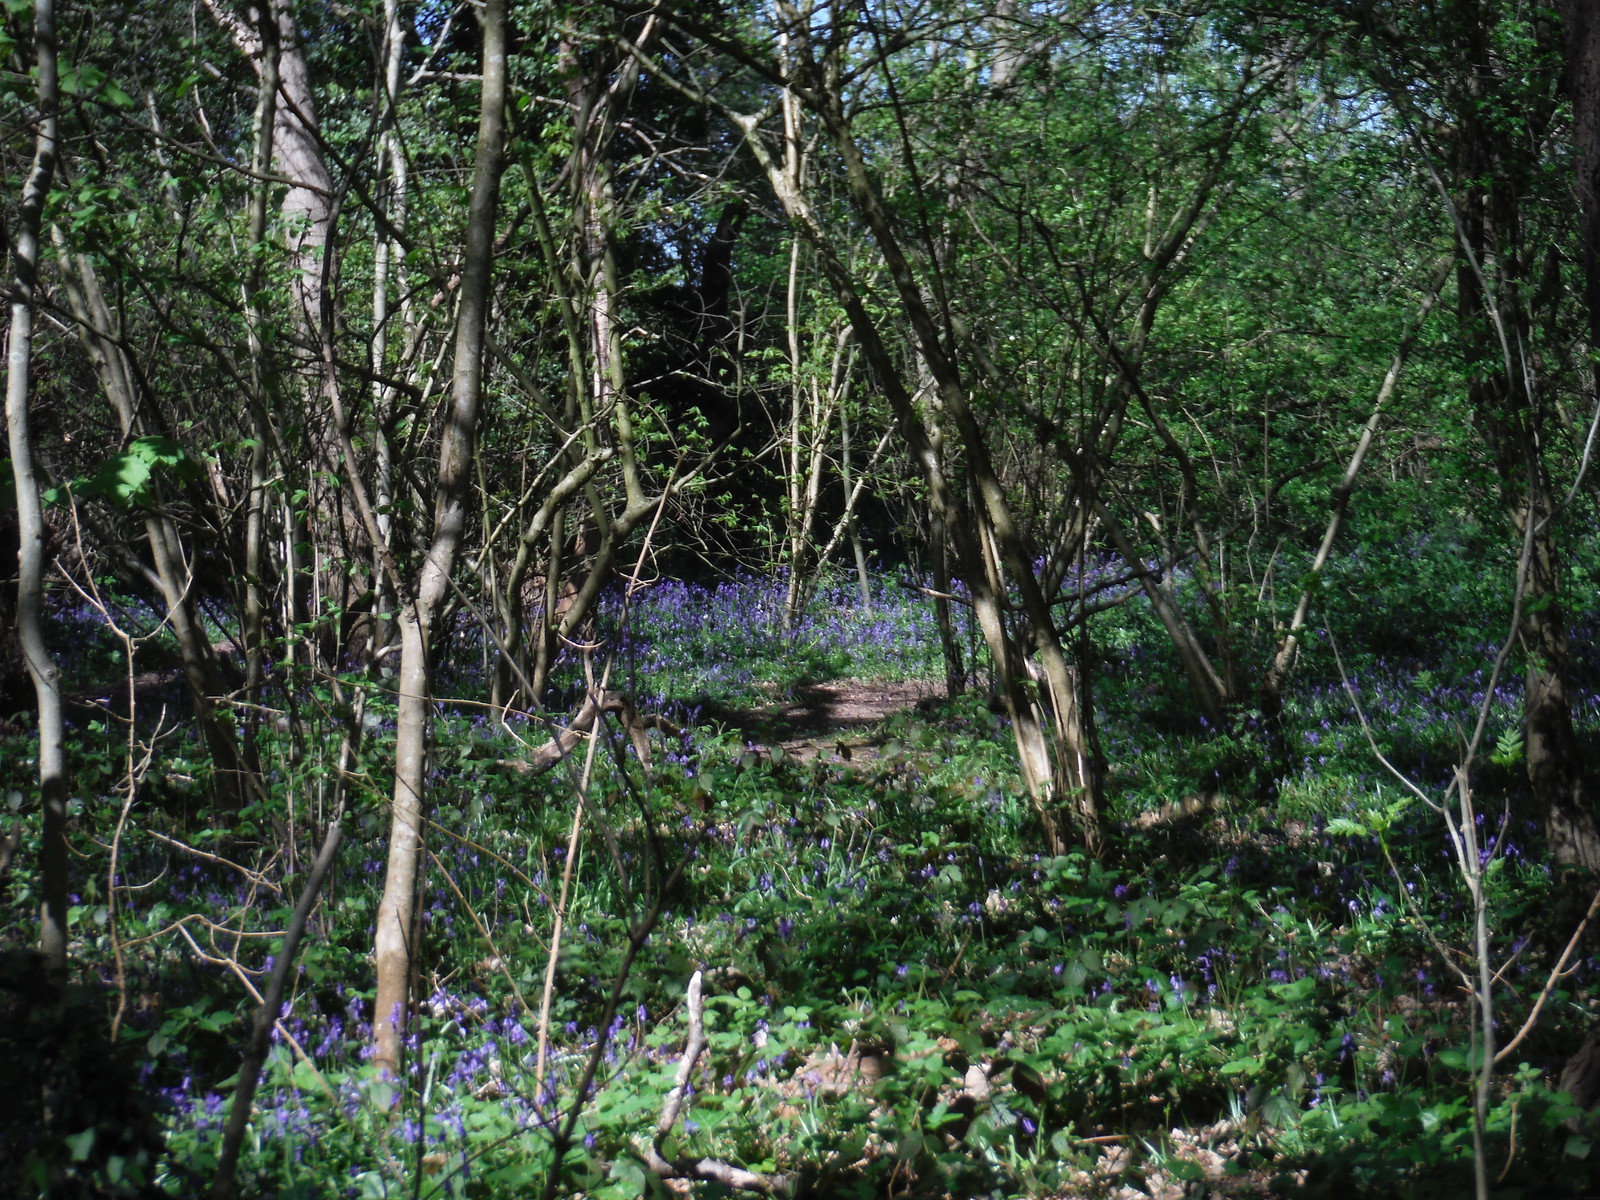 Bluebells in Shepherdleas Wood SWC Short Walk 44 - Oxleas Wood and Shooters Hill (Falconwood Circular)